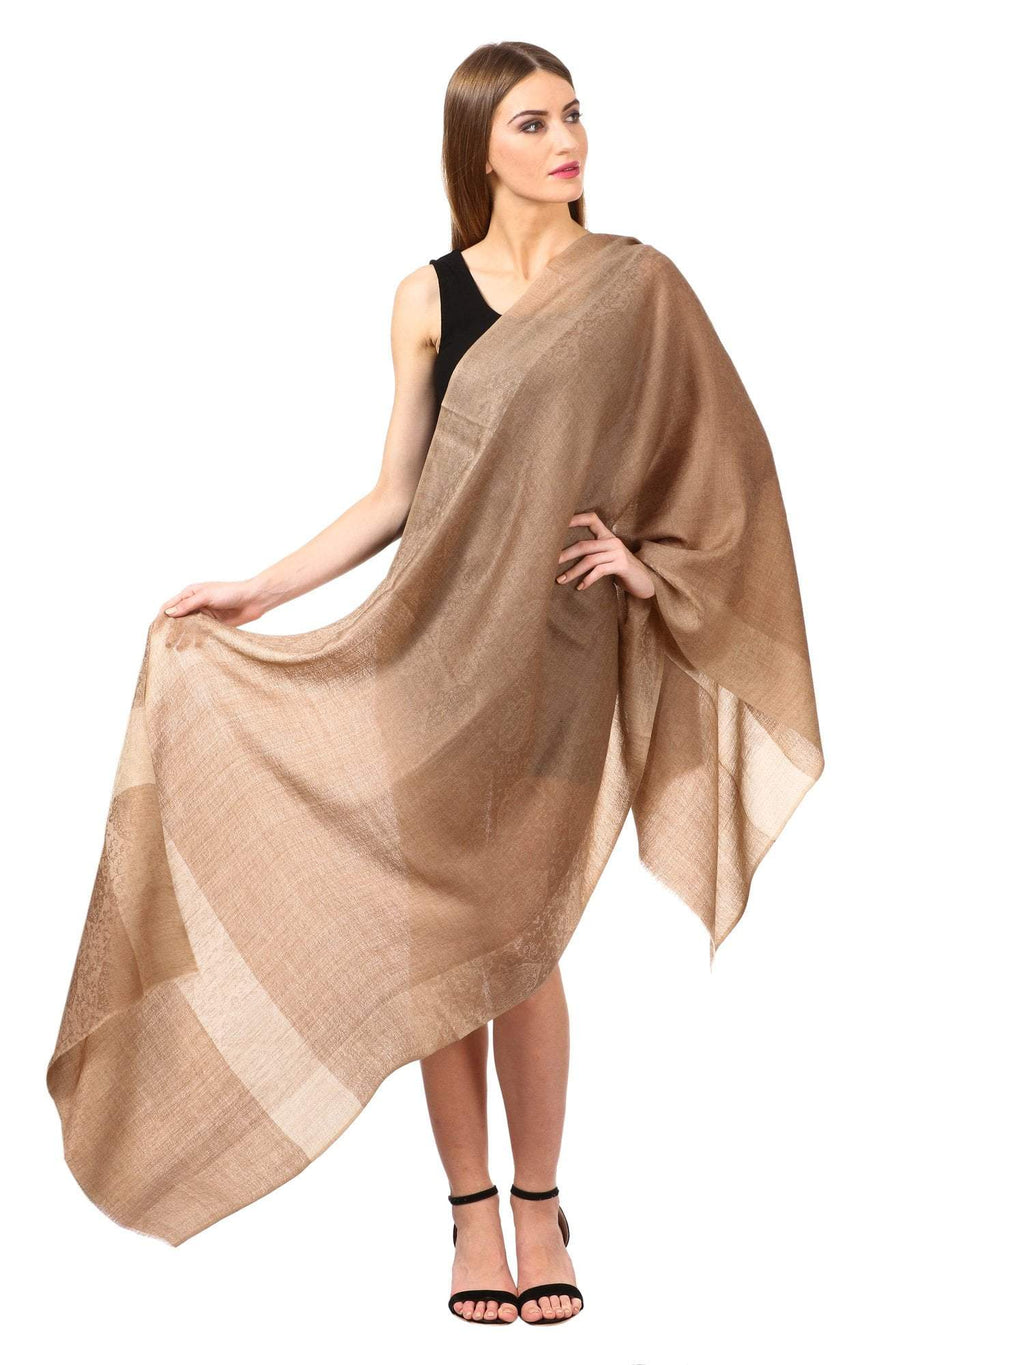 Pashtush Women's Reversible Stole with Paiseley weave, Nude Beige, shades of pashmina